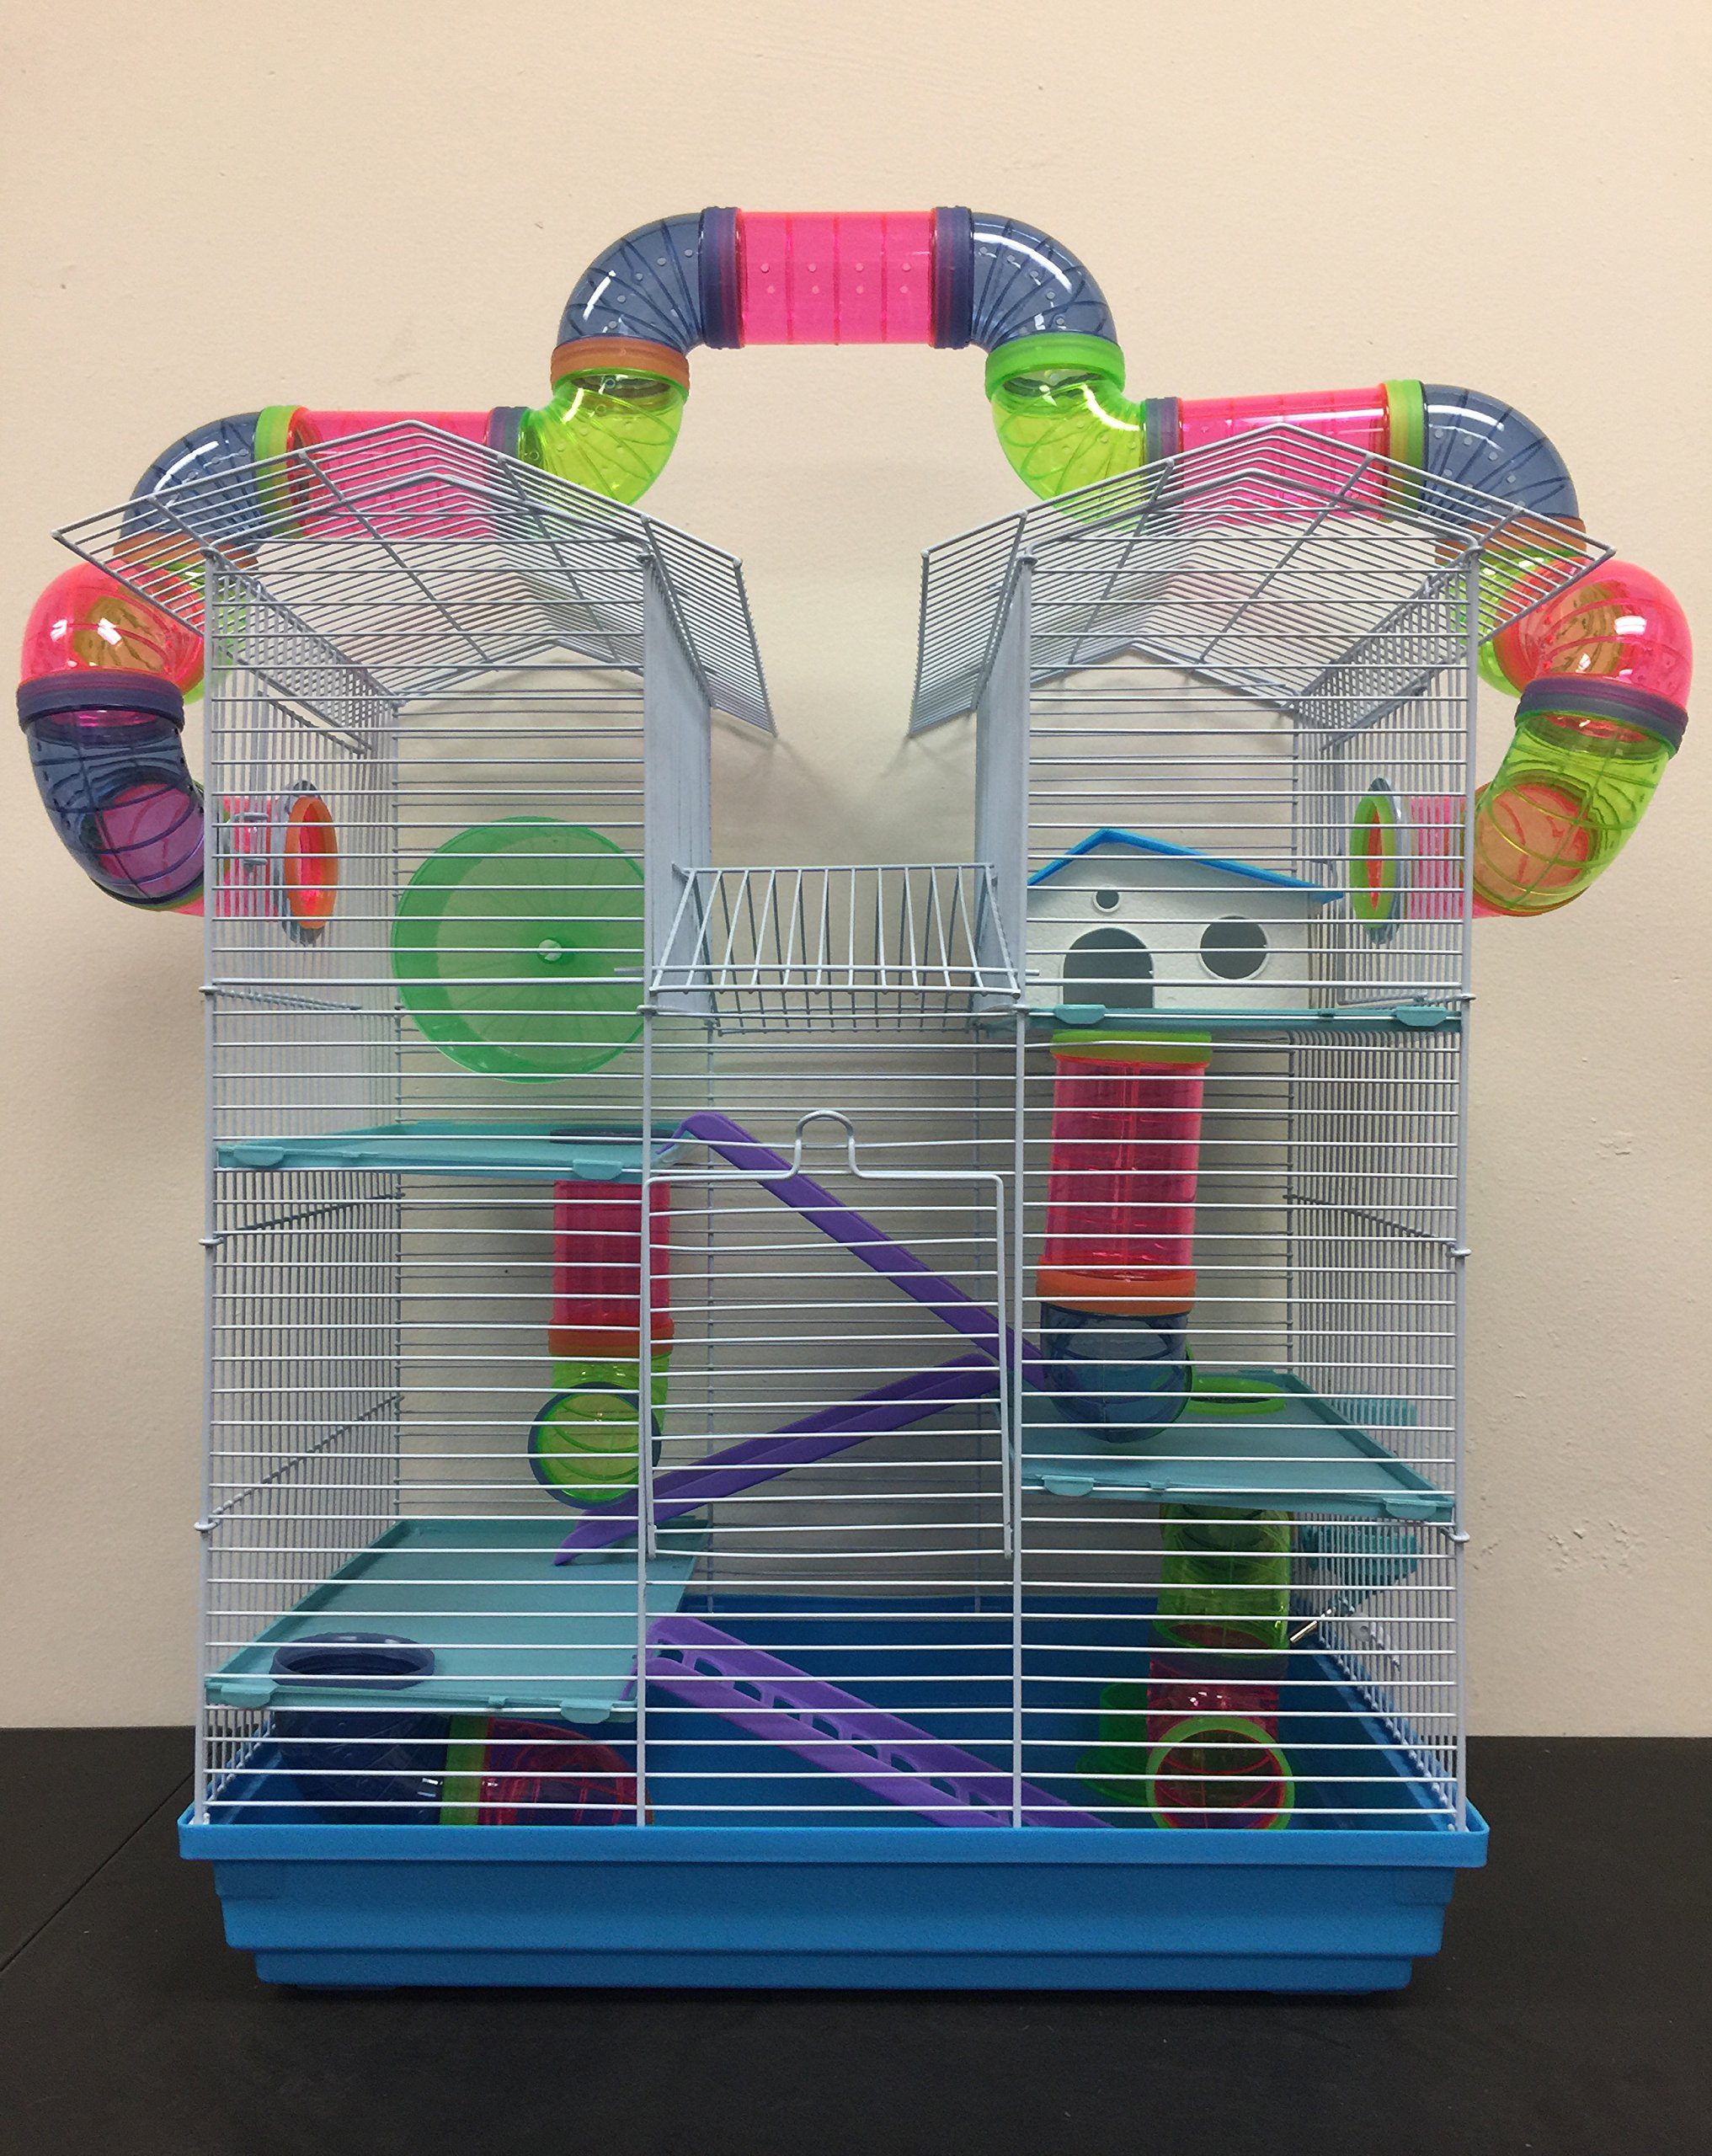 NEW Large Twin Towner Habitat Hamster Rodent Gerbil Mouse Mice Rat Wire Animal Cage Long Crossing Tube